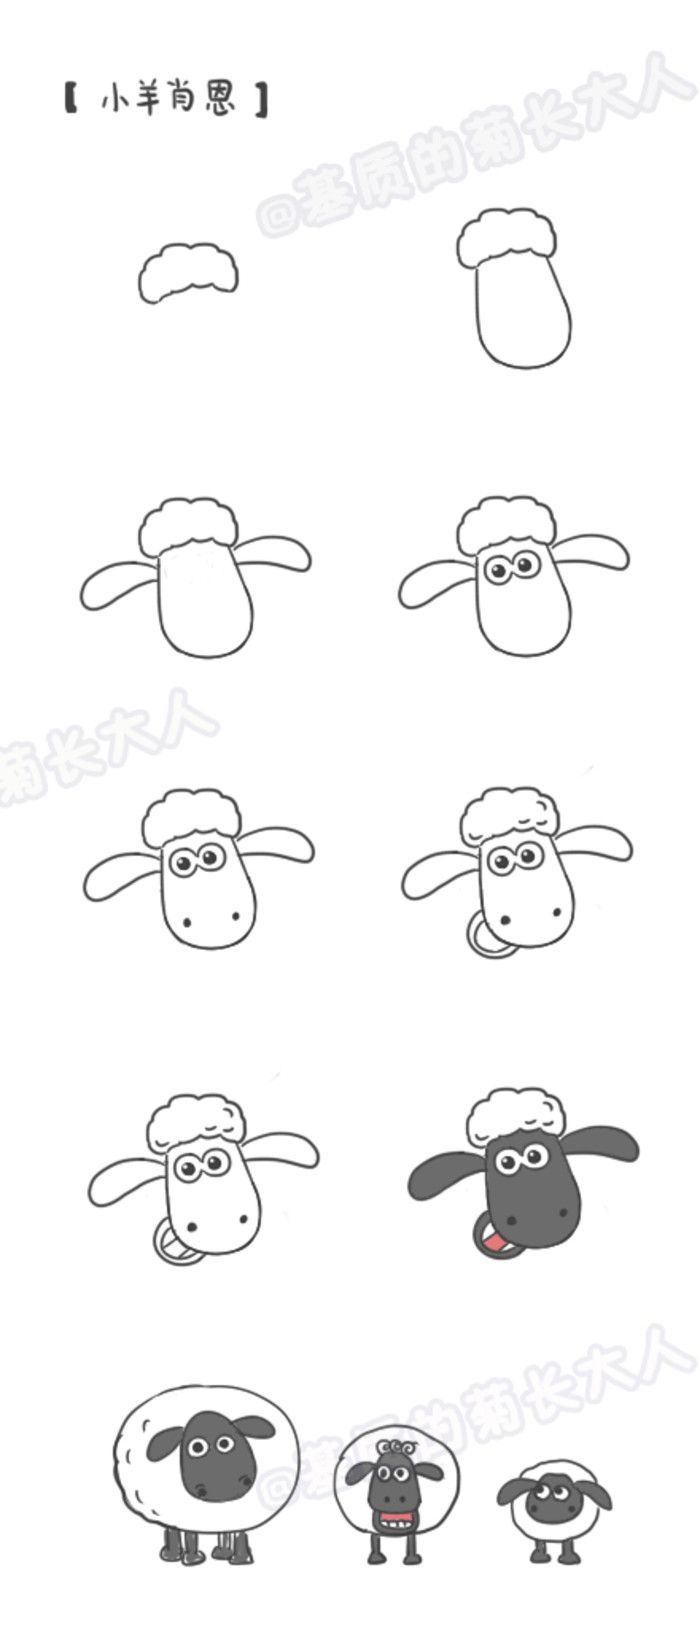 Simple Steps To Draw Shaun The Sheep Ask Children To Draw It Then